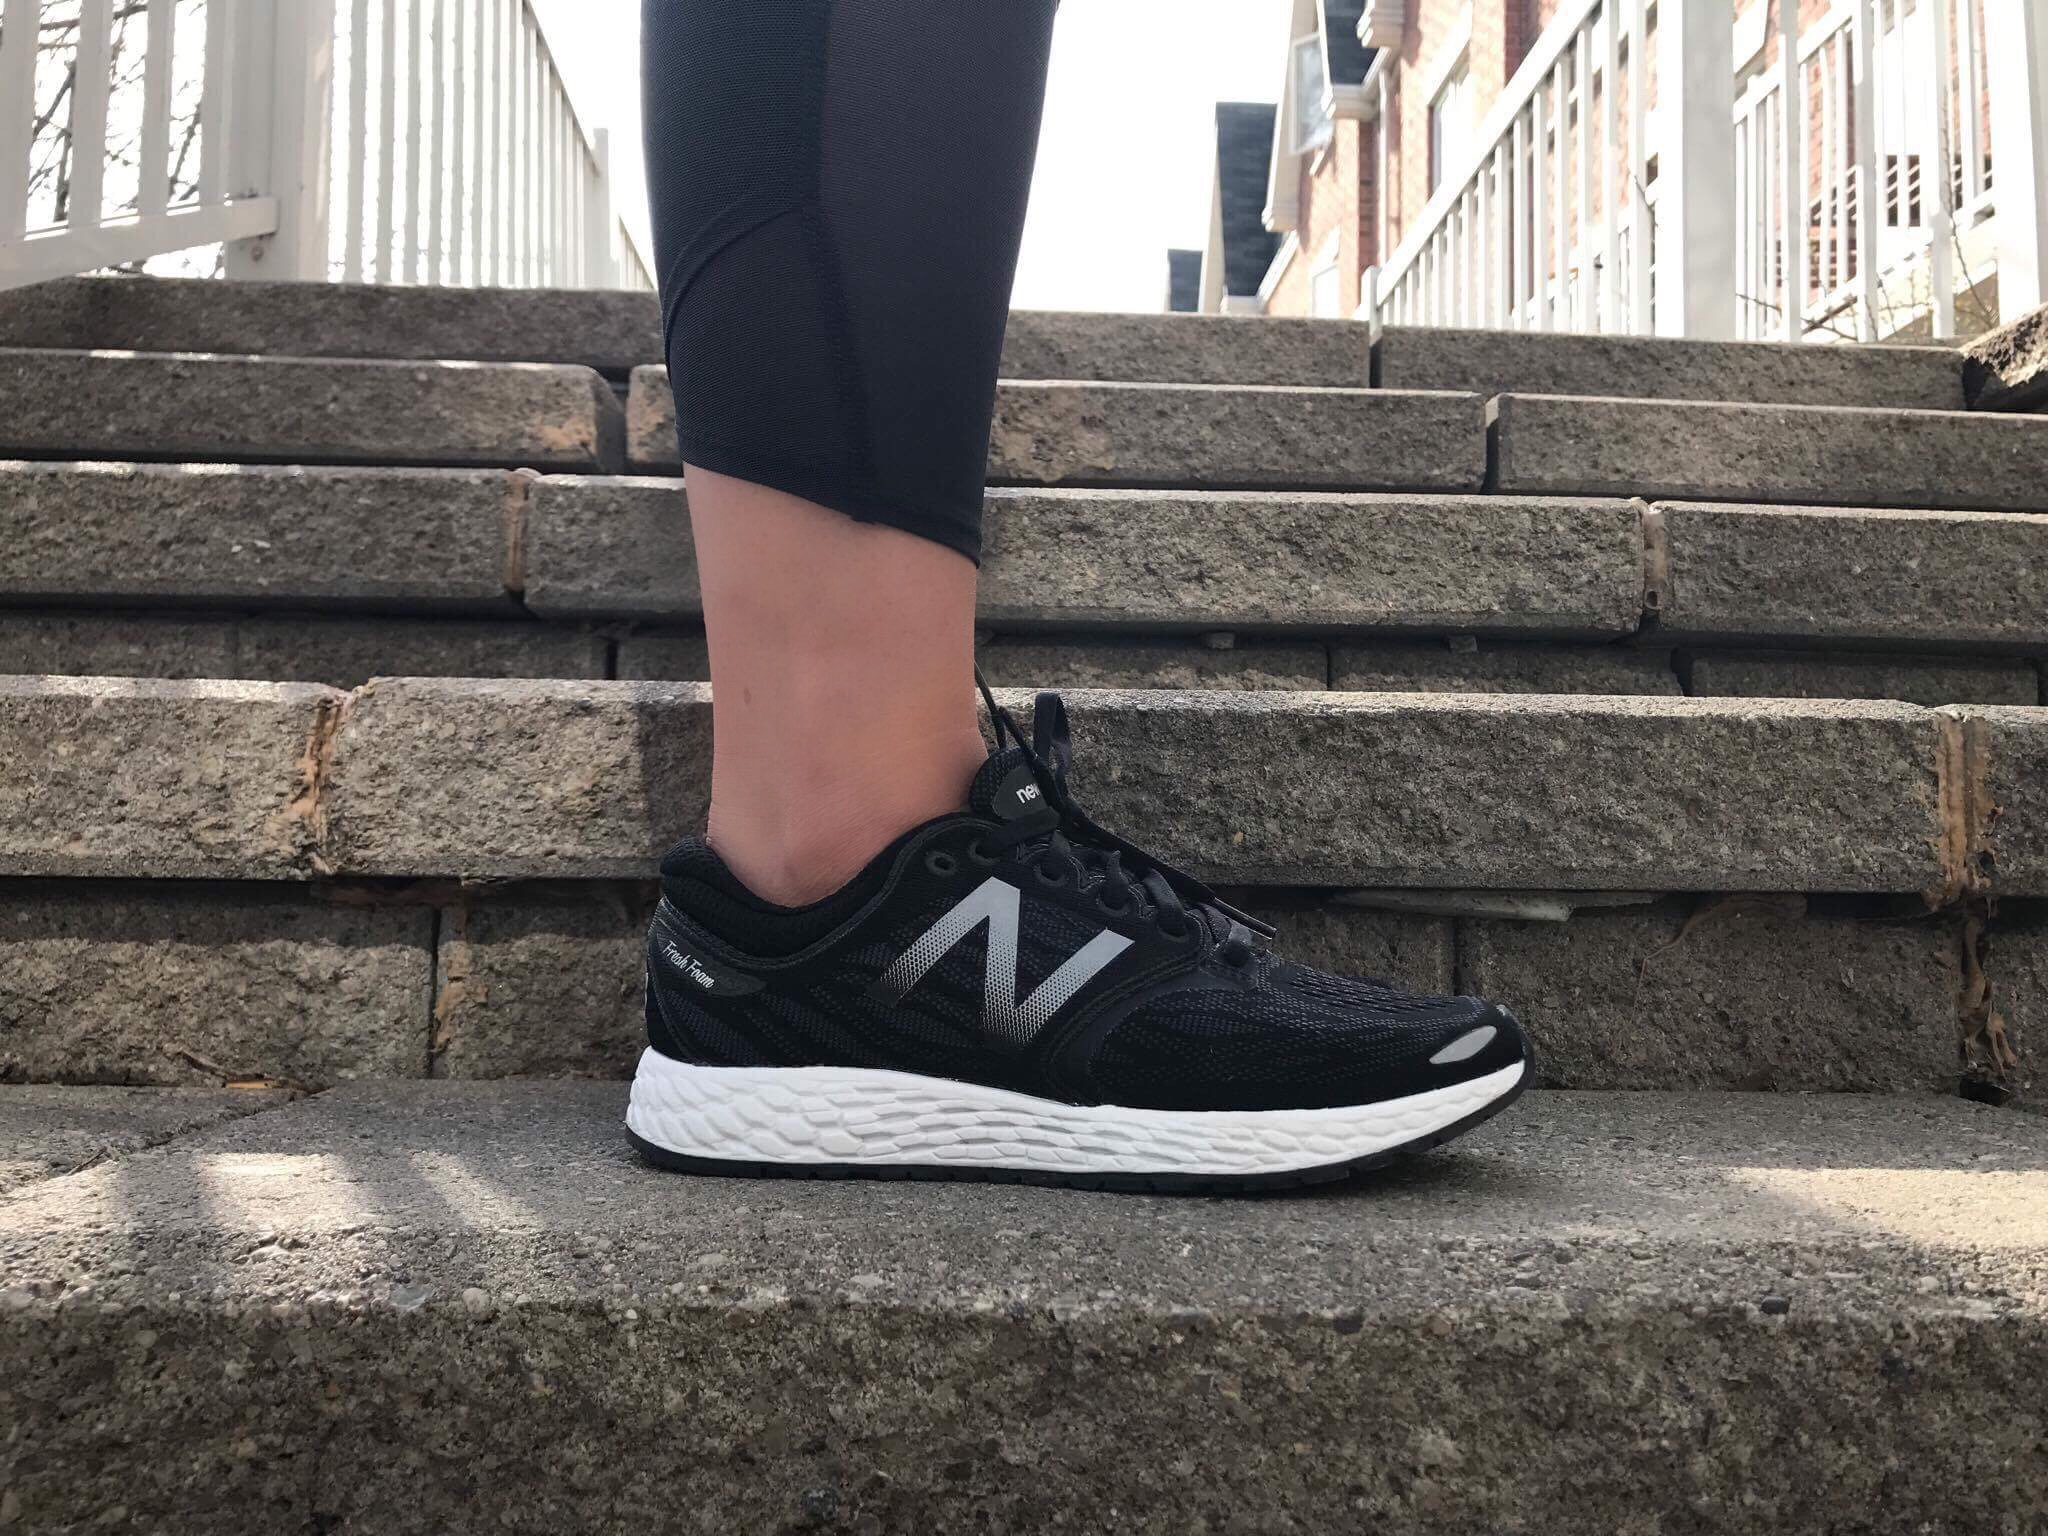 new balance sample sale vancouver